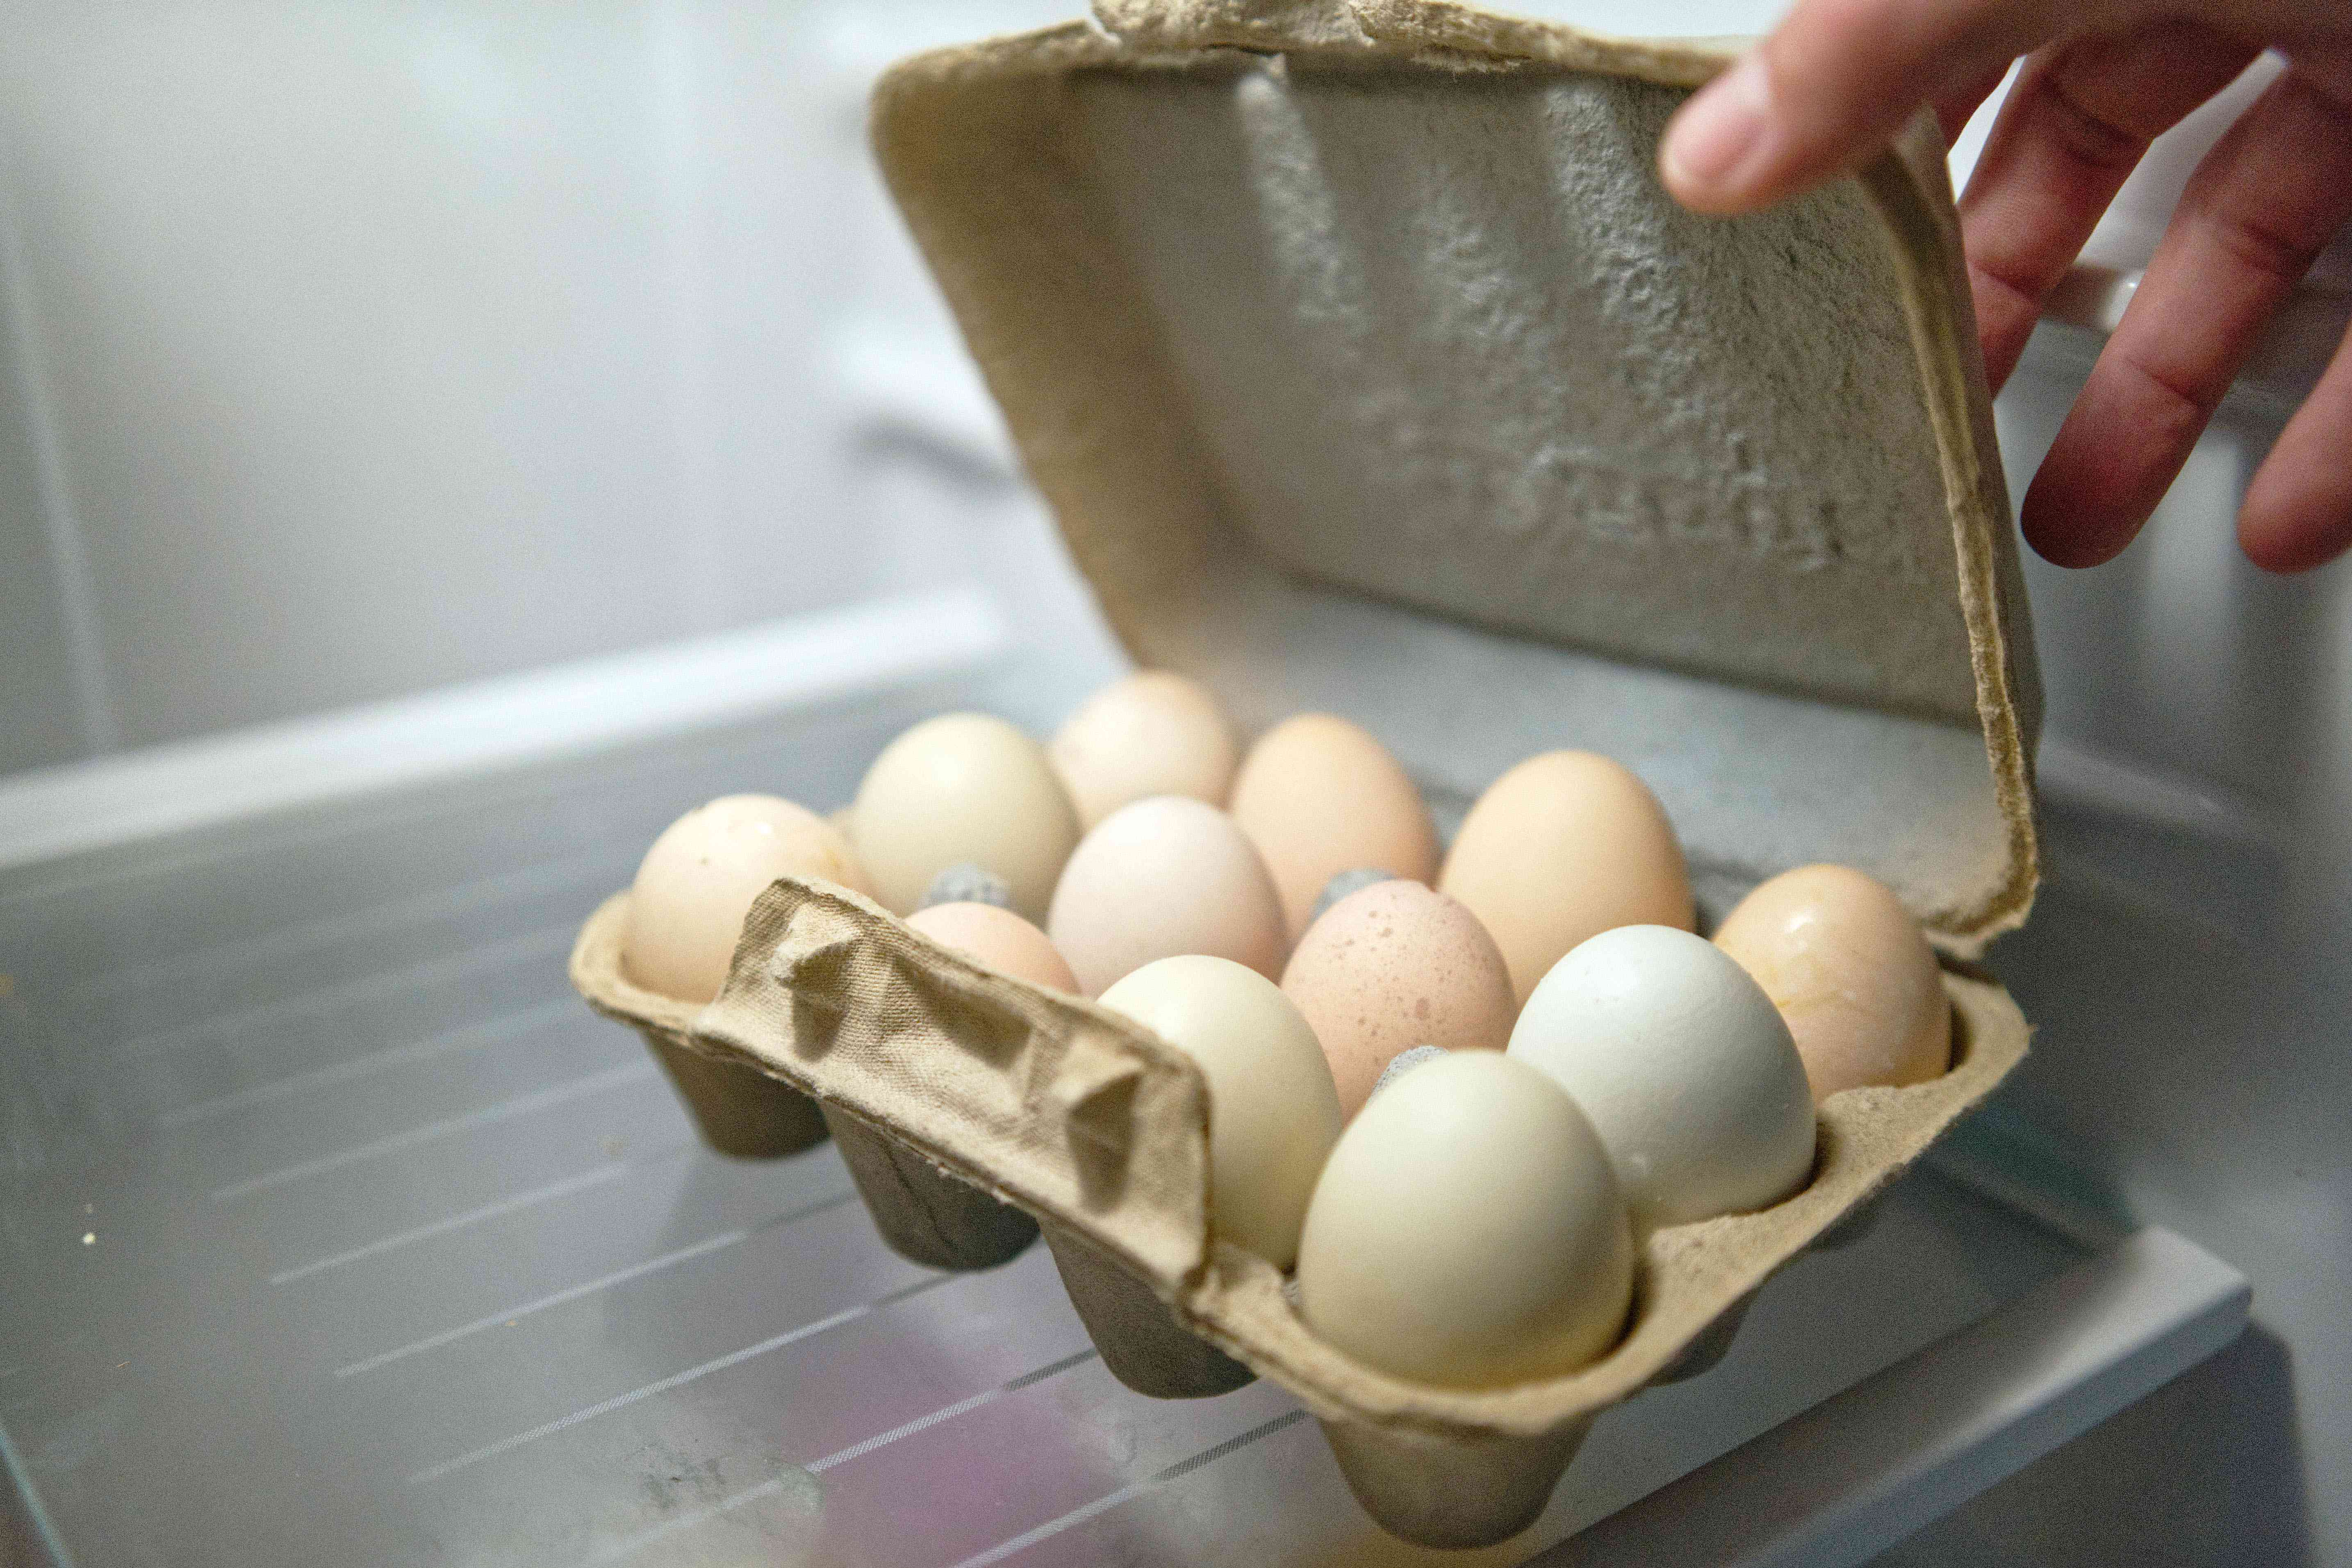 hand opens recycled egg carton in fridge to show farm fresh eggs stored